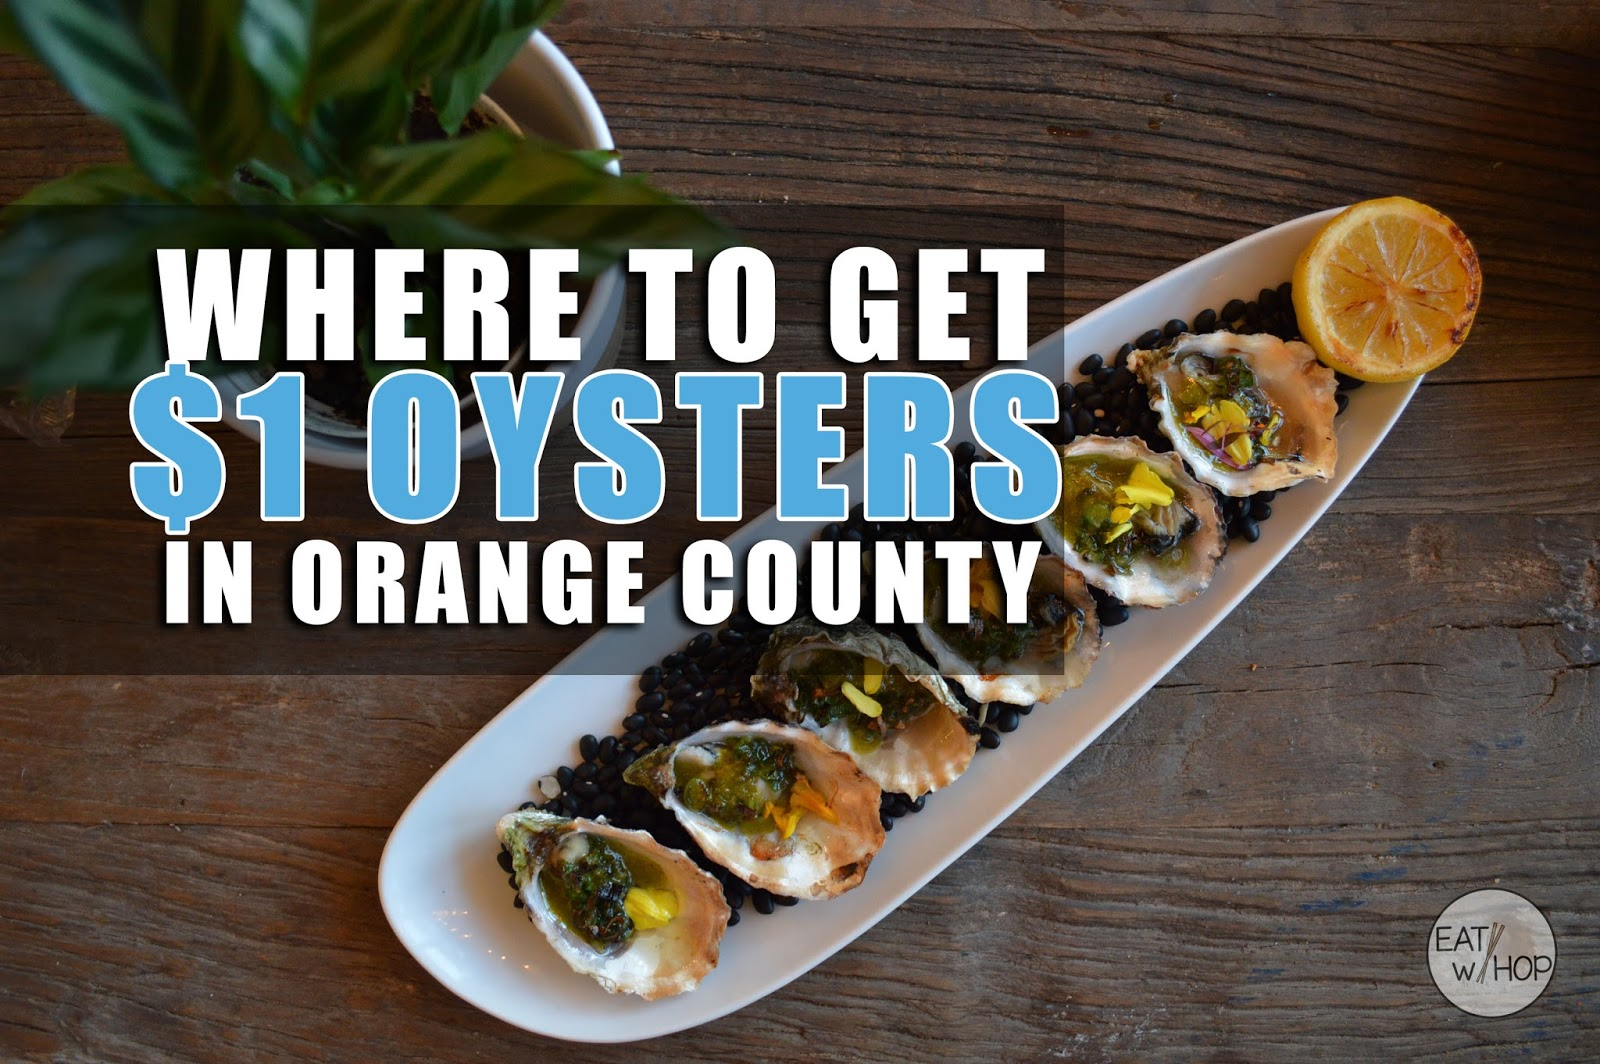 Your Ultimate Guide to $1 Oysters in Orange County